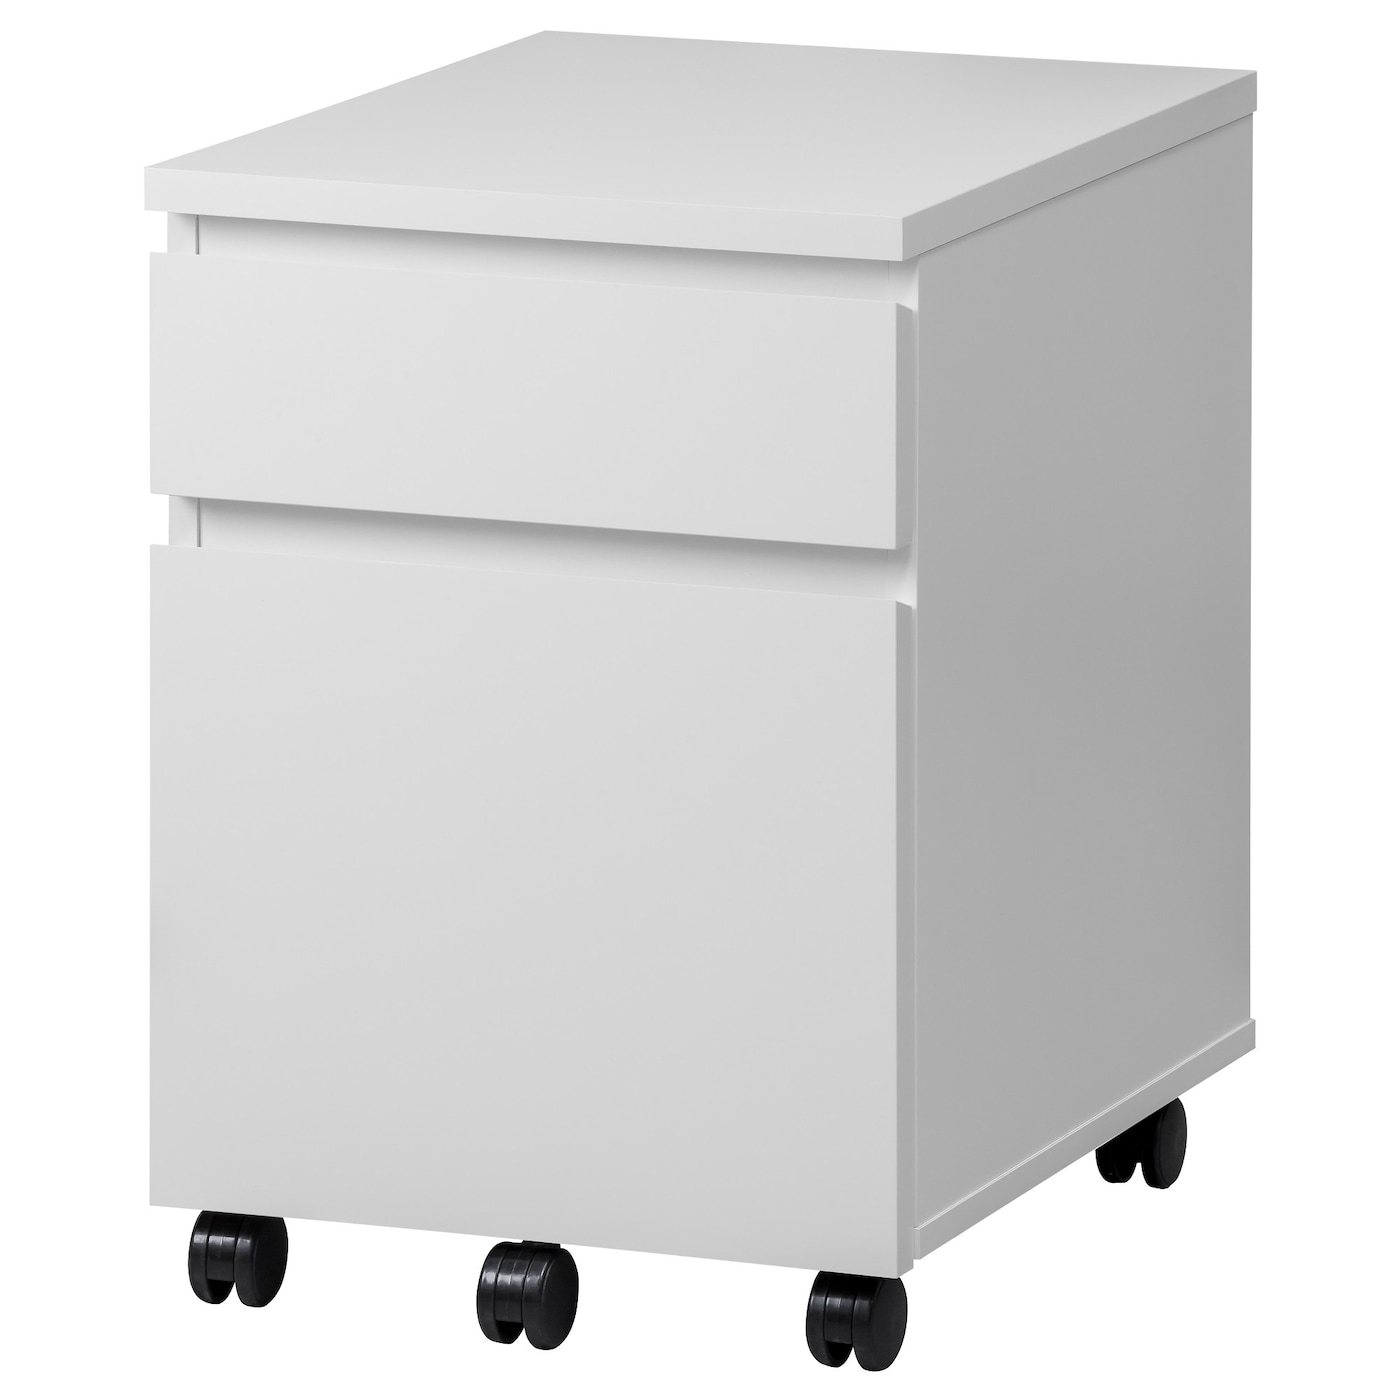 IKEA MALM drawer unit on castors Easy to move where it is needed thanks to  castors